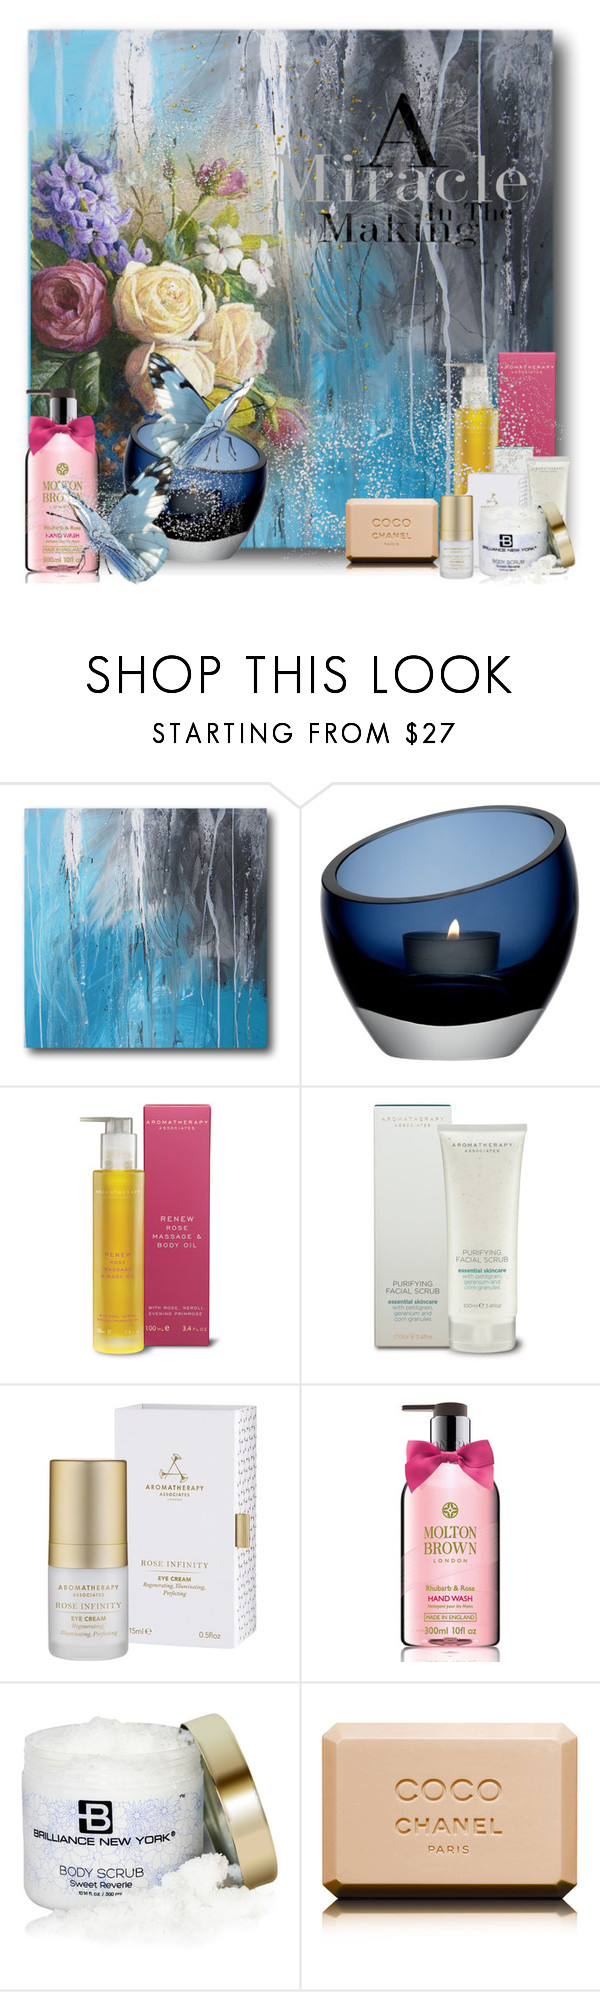 """""""Skin Care!!"""" by eco-art ❤ liked on Polyvore featuring beauty, LSA International, Aromatherapy Associates, Molton Brown, Brilliance New York and Chanel"""